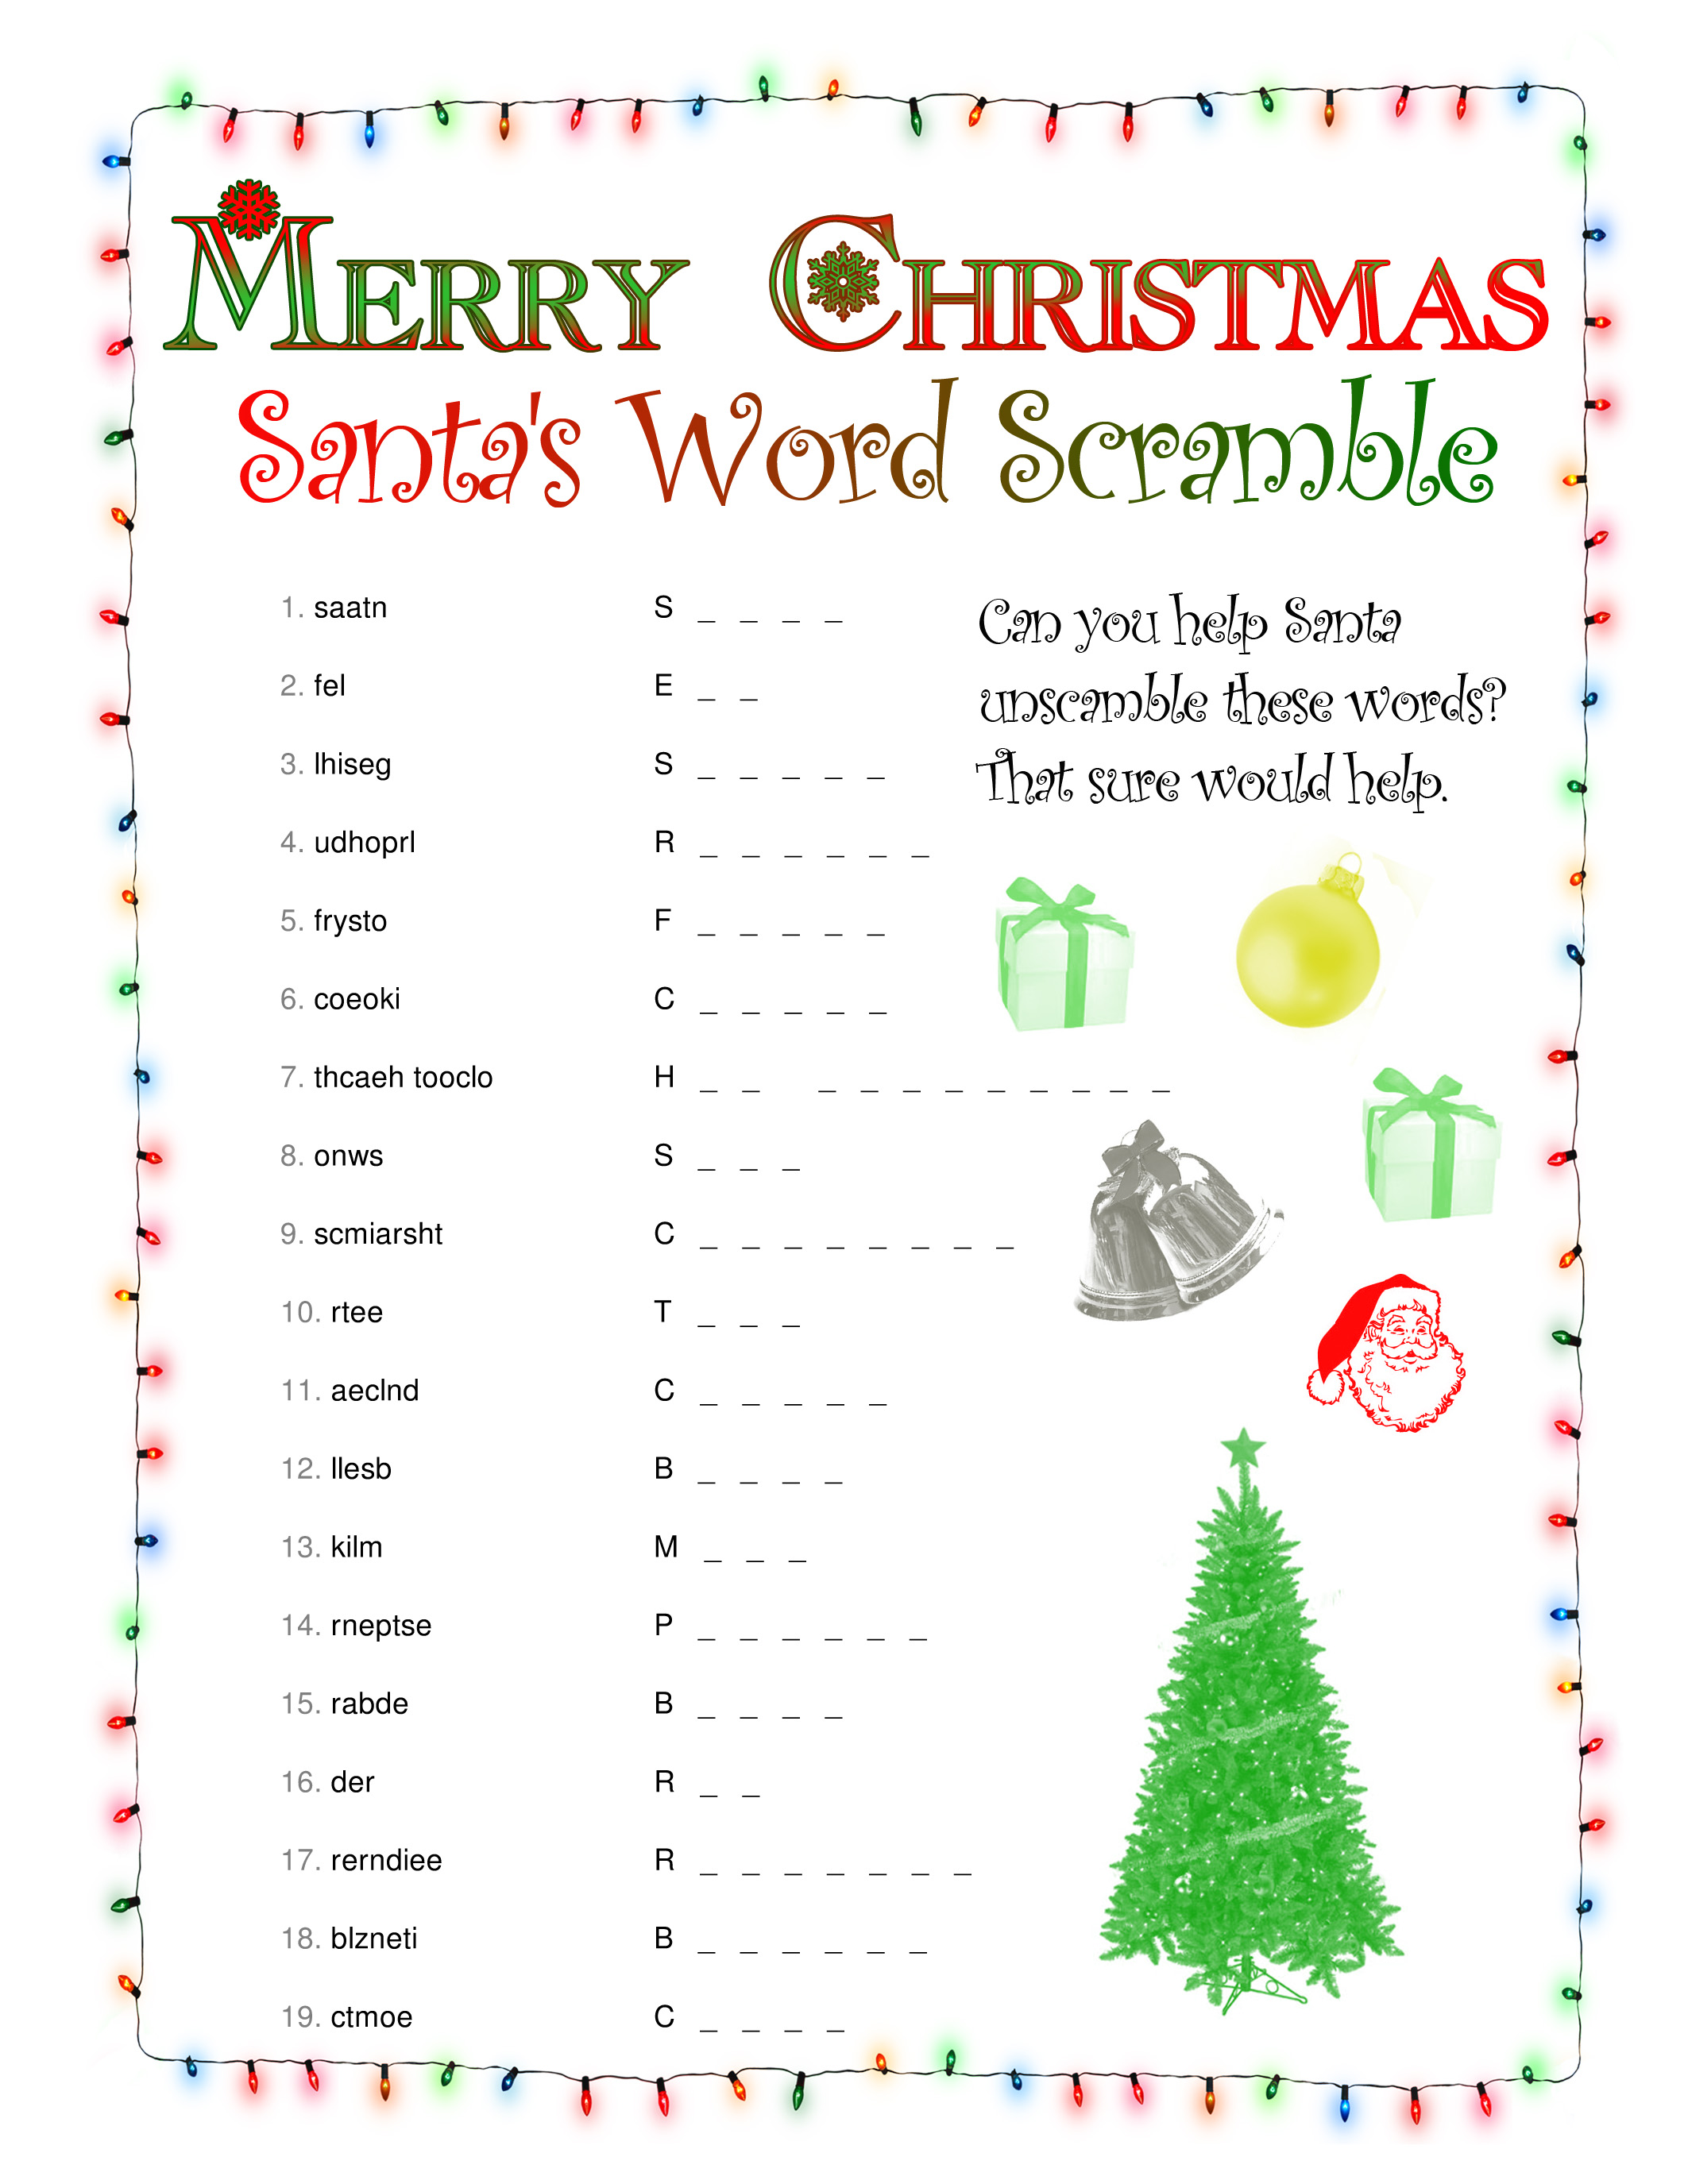 Christmas Word Scramble Free Printable Worksheet